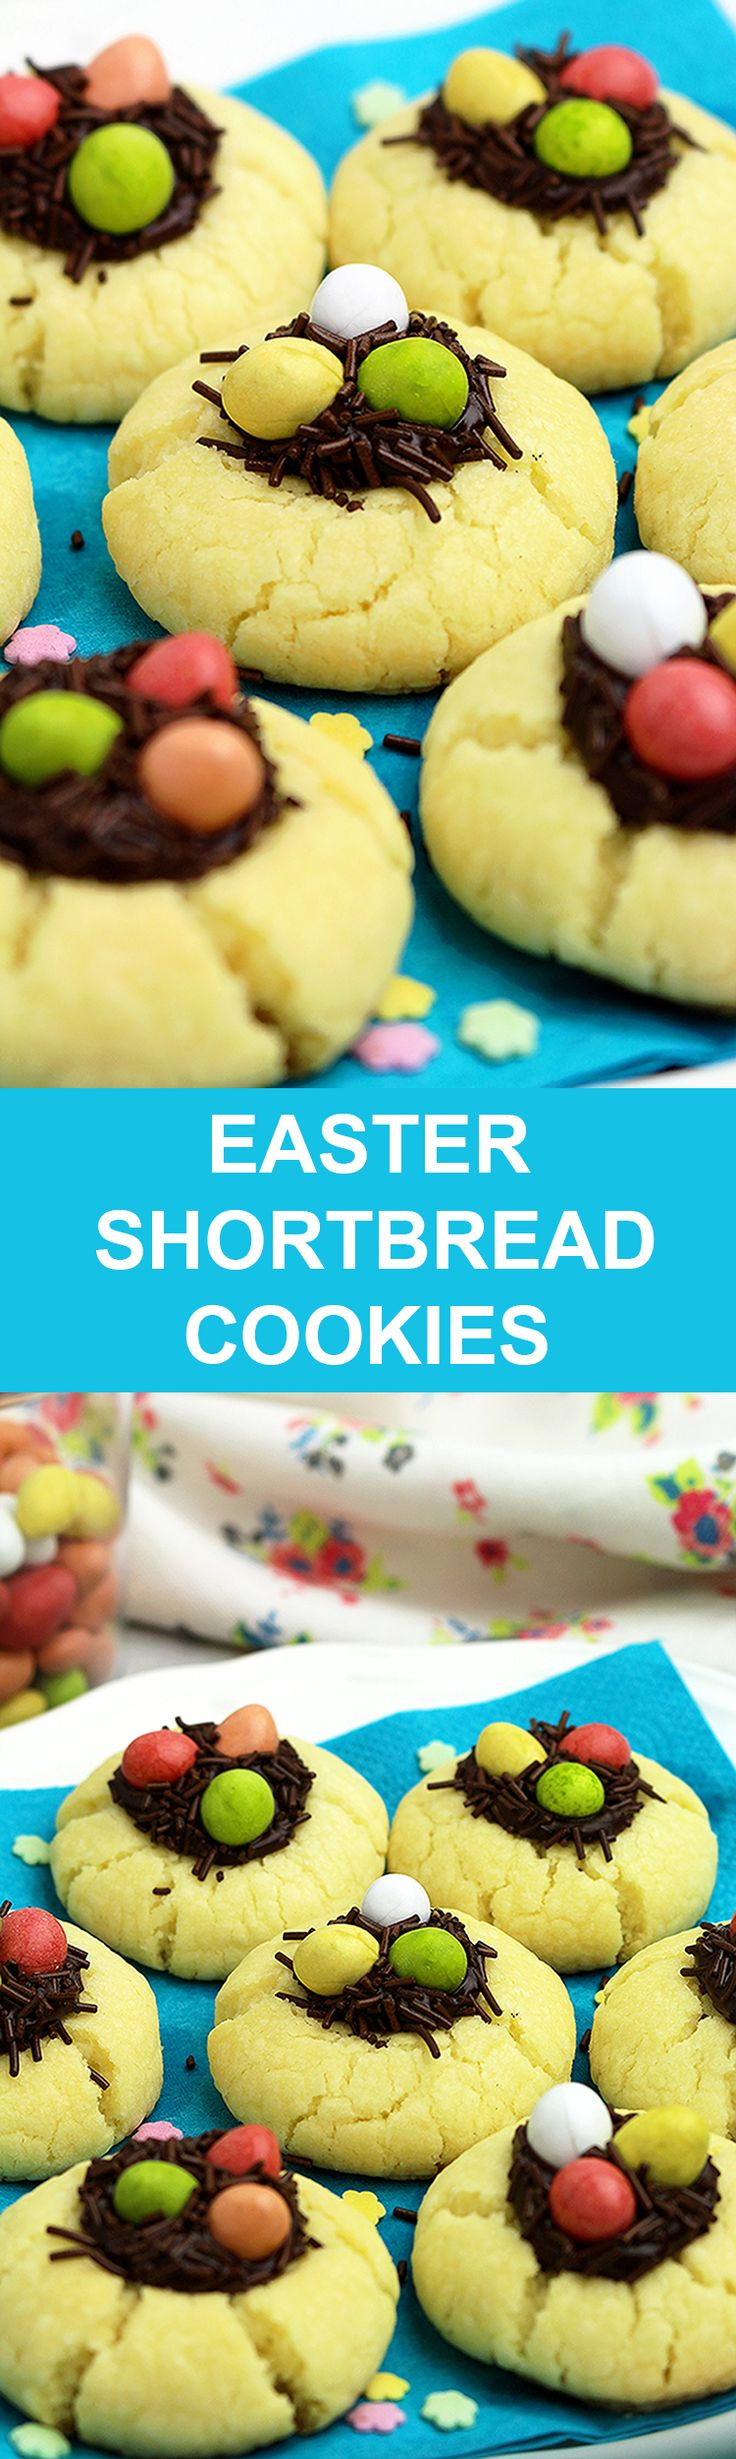 Easter Shortbread Cookies perfect Easter cookies that simply melt in your mouth. Decorated especially for Easter, they wilk make this holiday more festive ♦